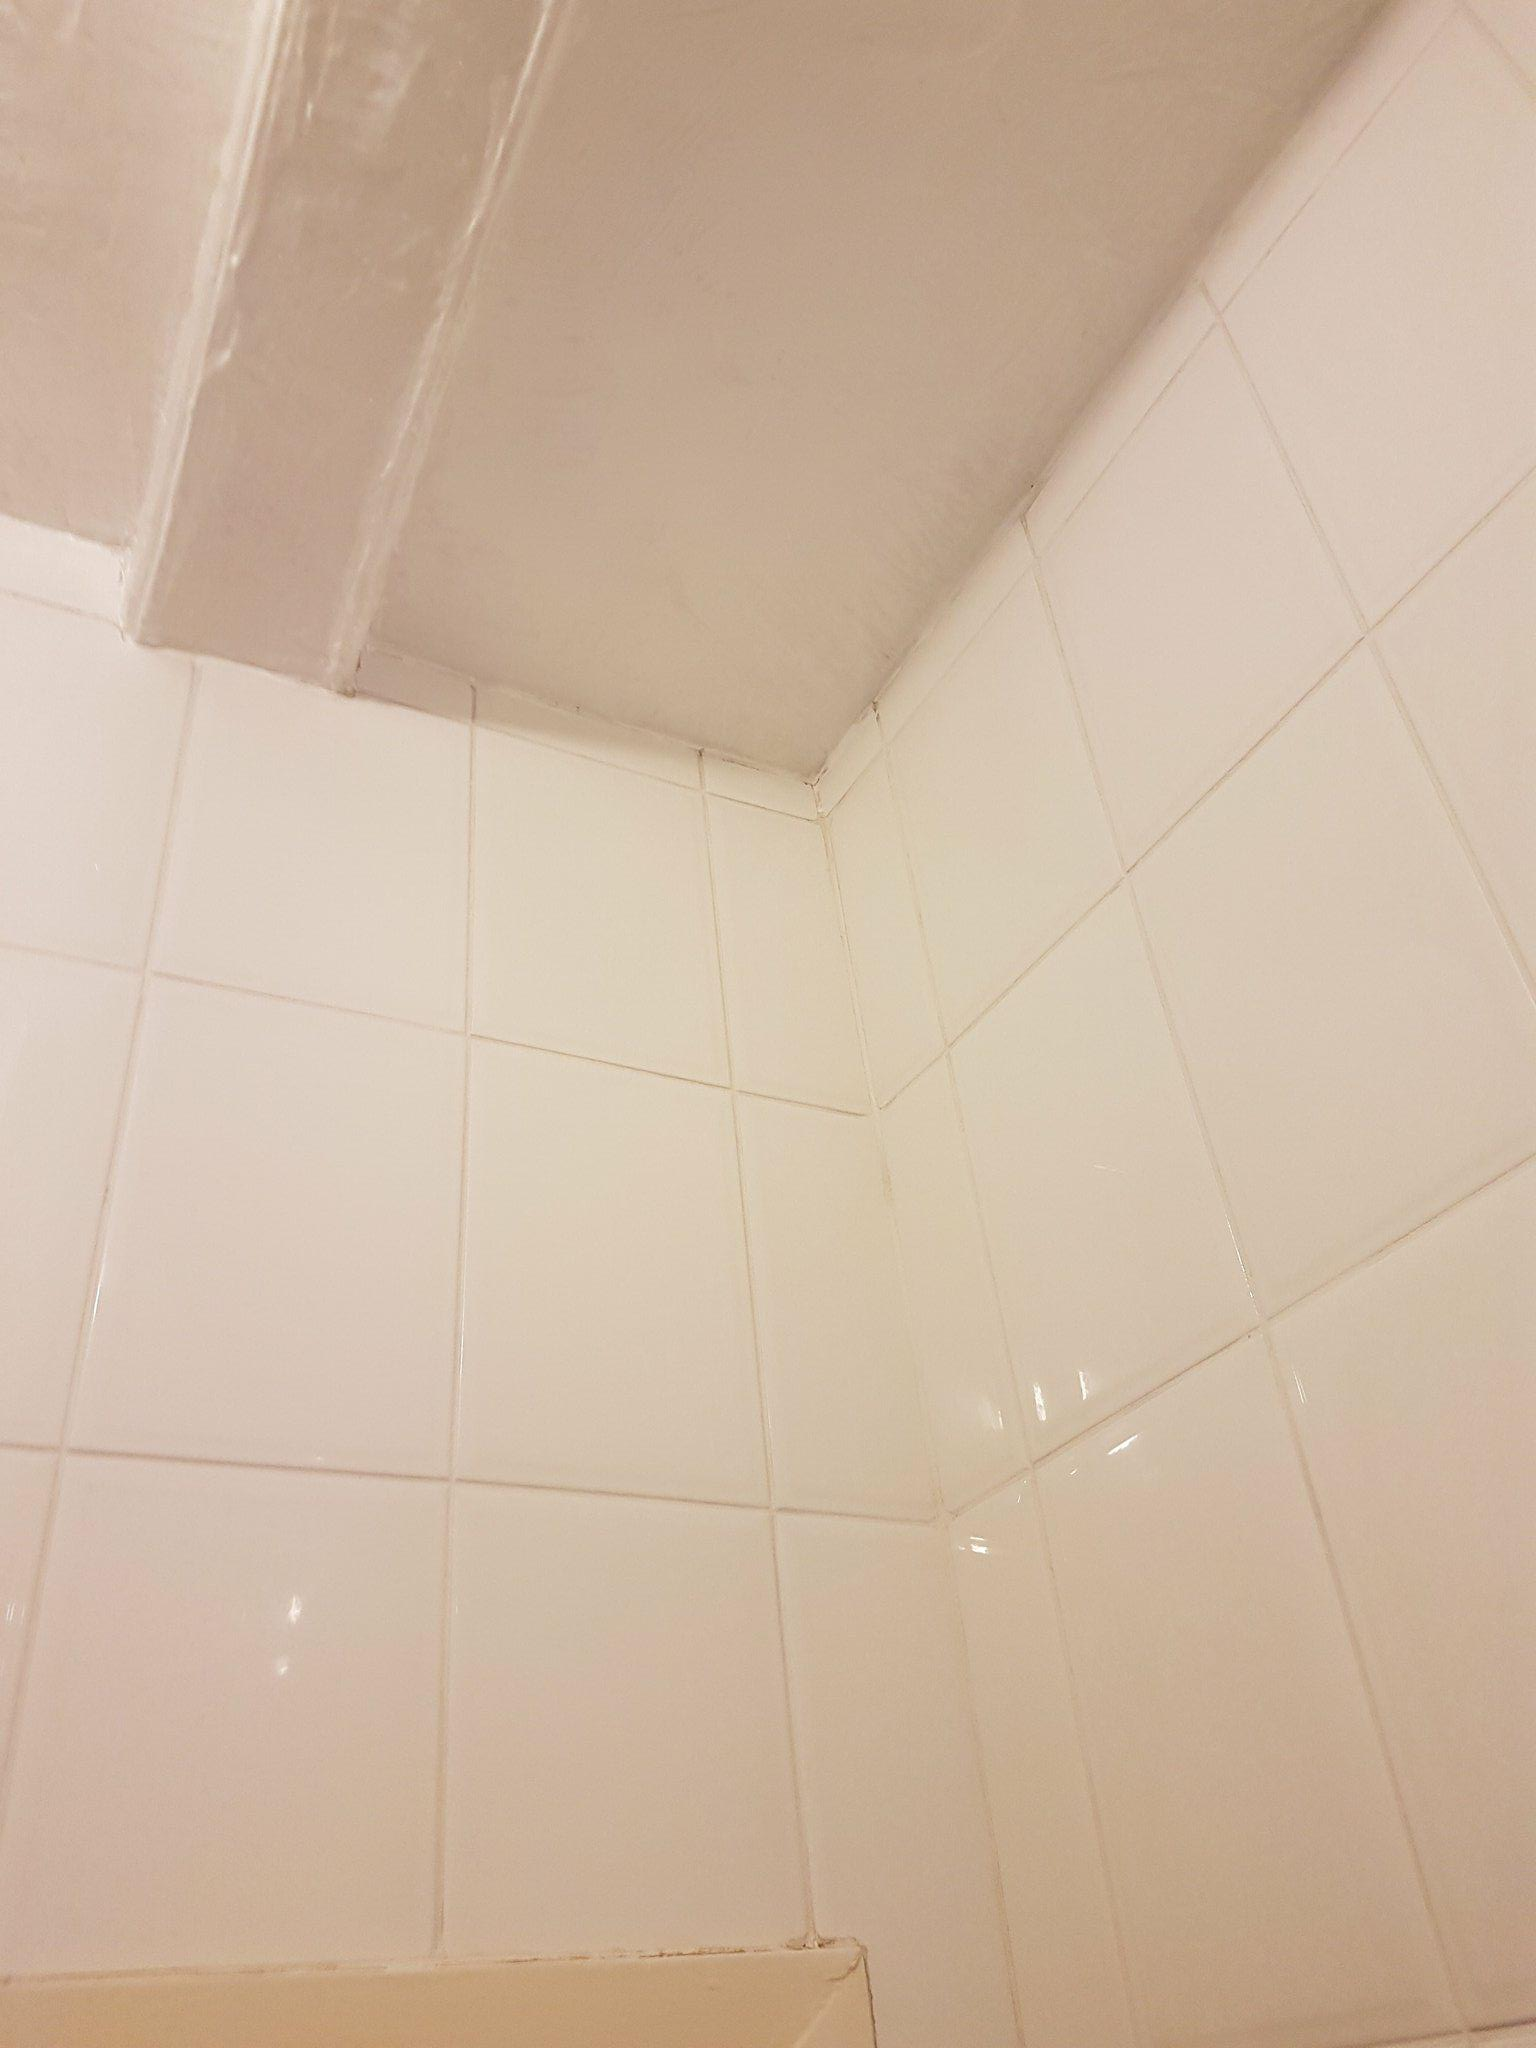 Mouldy Bathroom After Restoration in Eccles